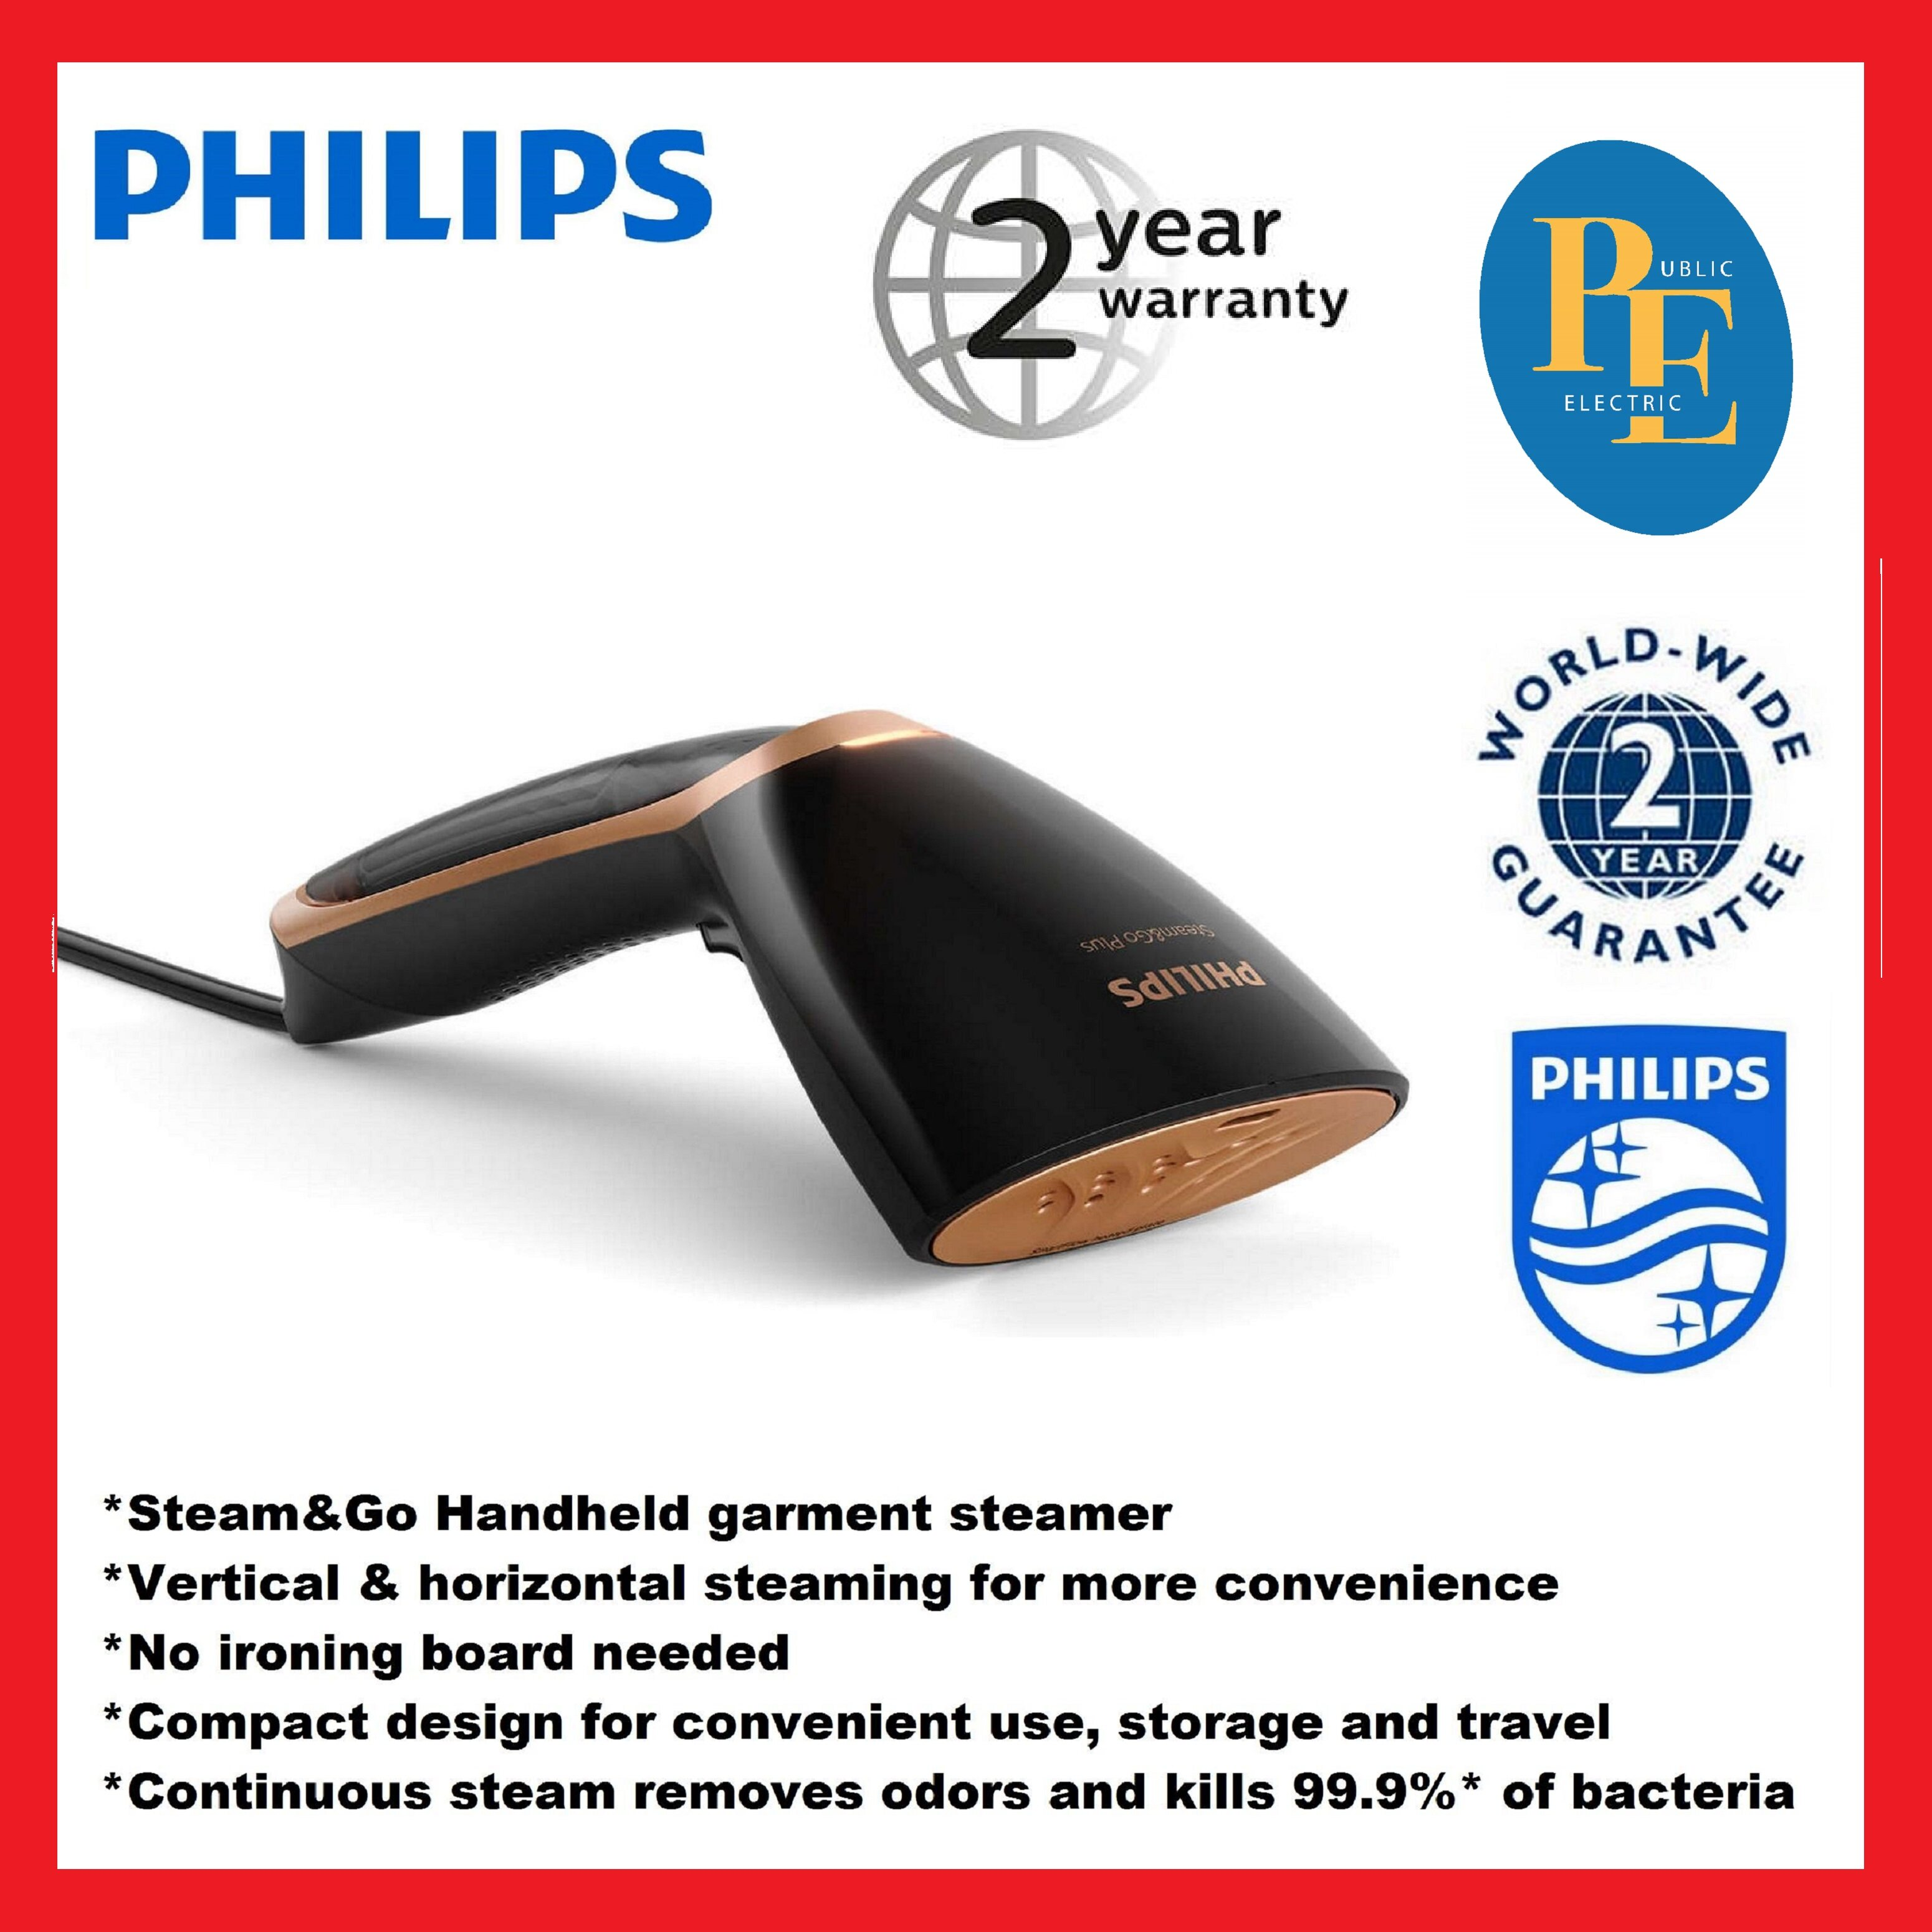 Philips Steam&Go Handheld Garment Steamer - GC362